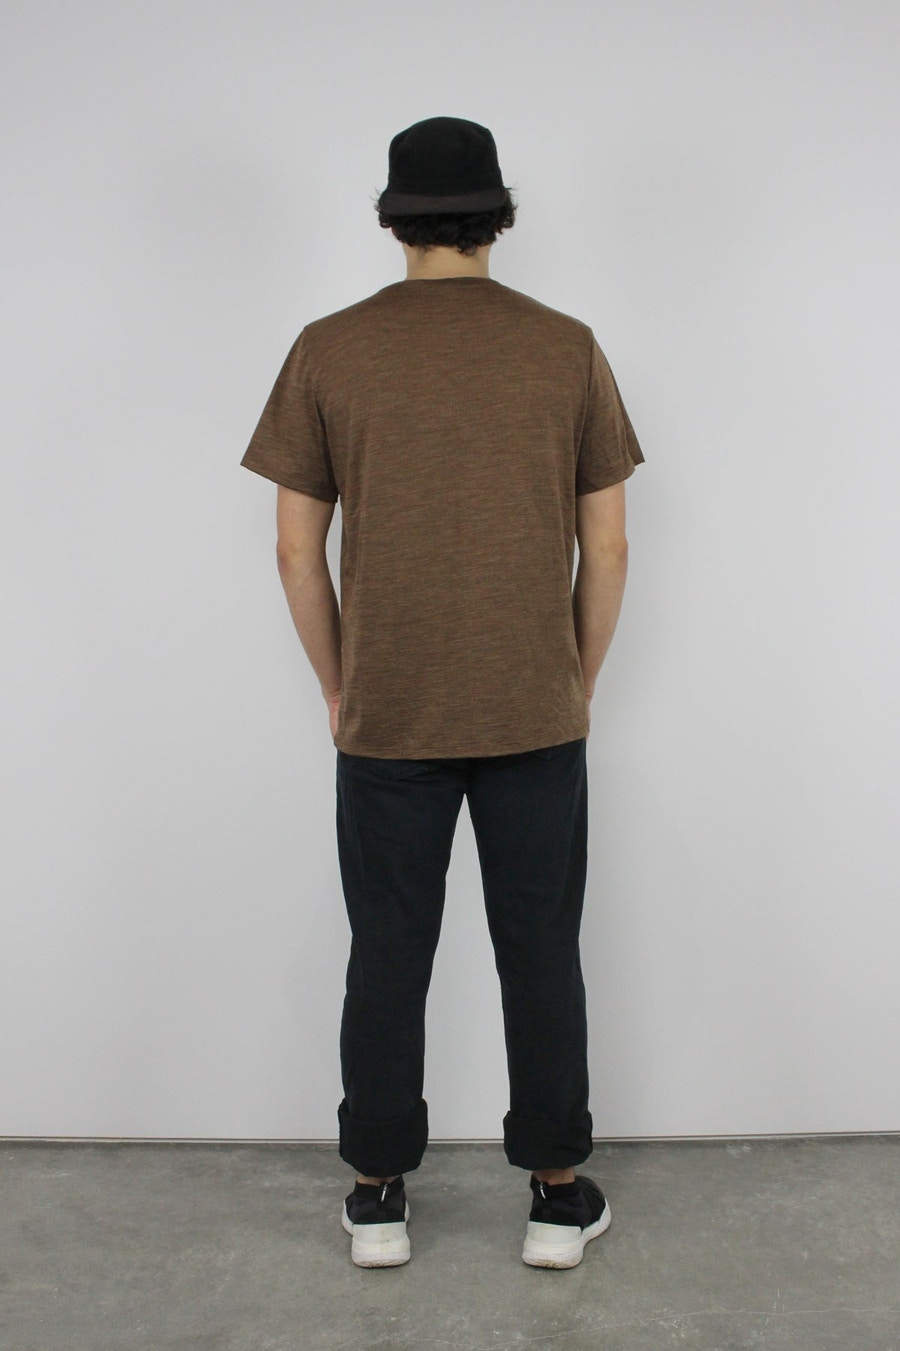 Elbe textiles sage merino tee shirt walnut marle back fabric by the fabric store